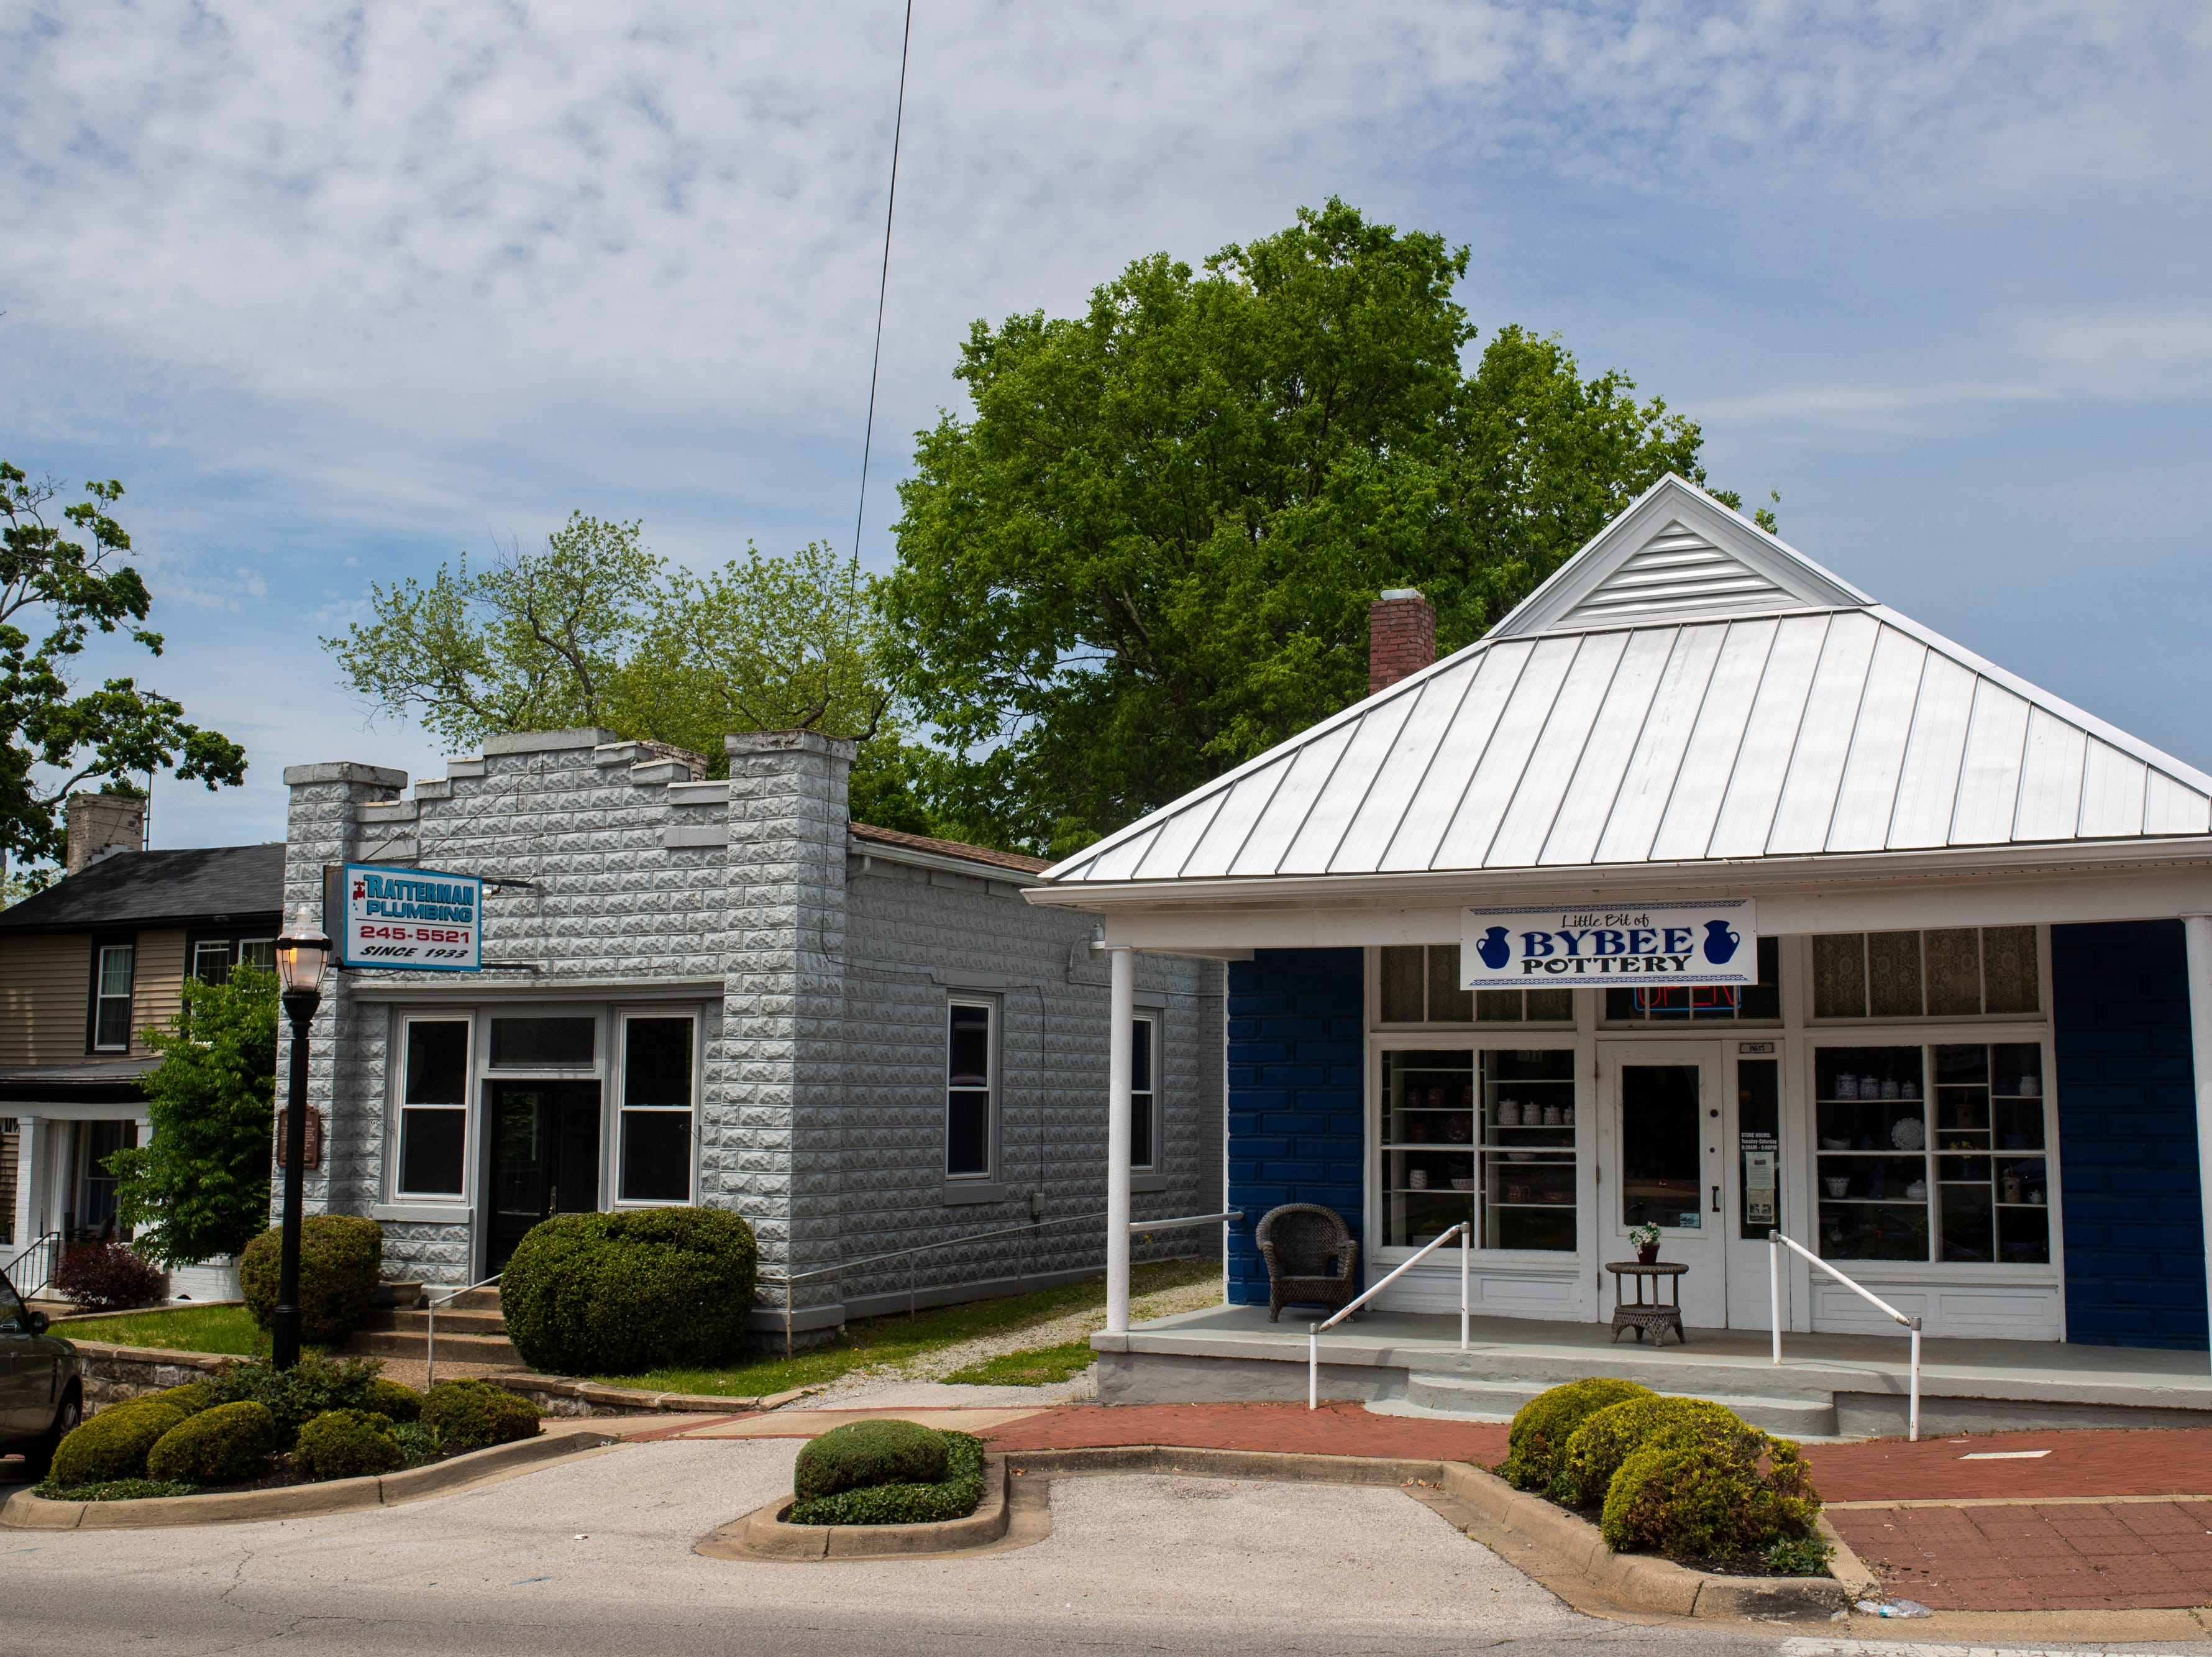 Outside the Little Bit of Bybee pottery shop in the Middletown neighborhood. May 8, 2019